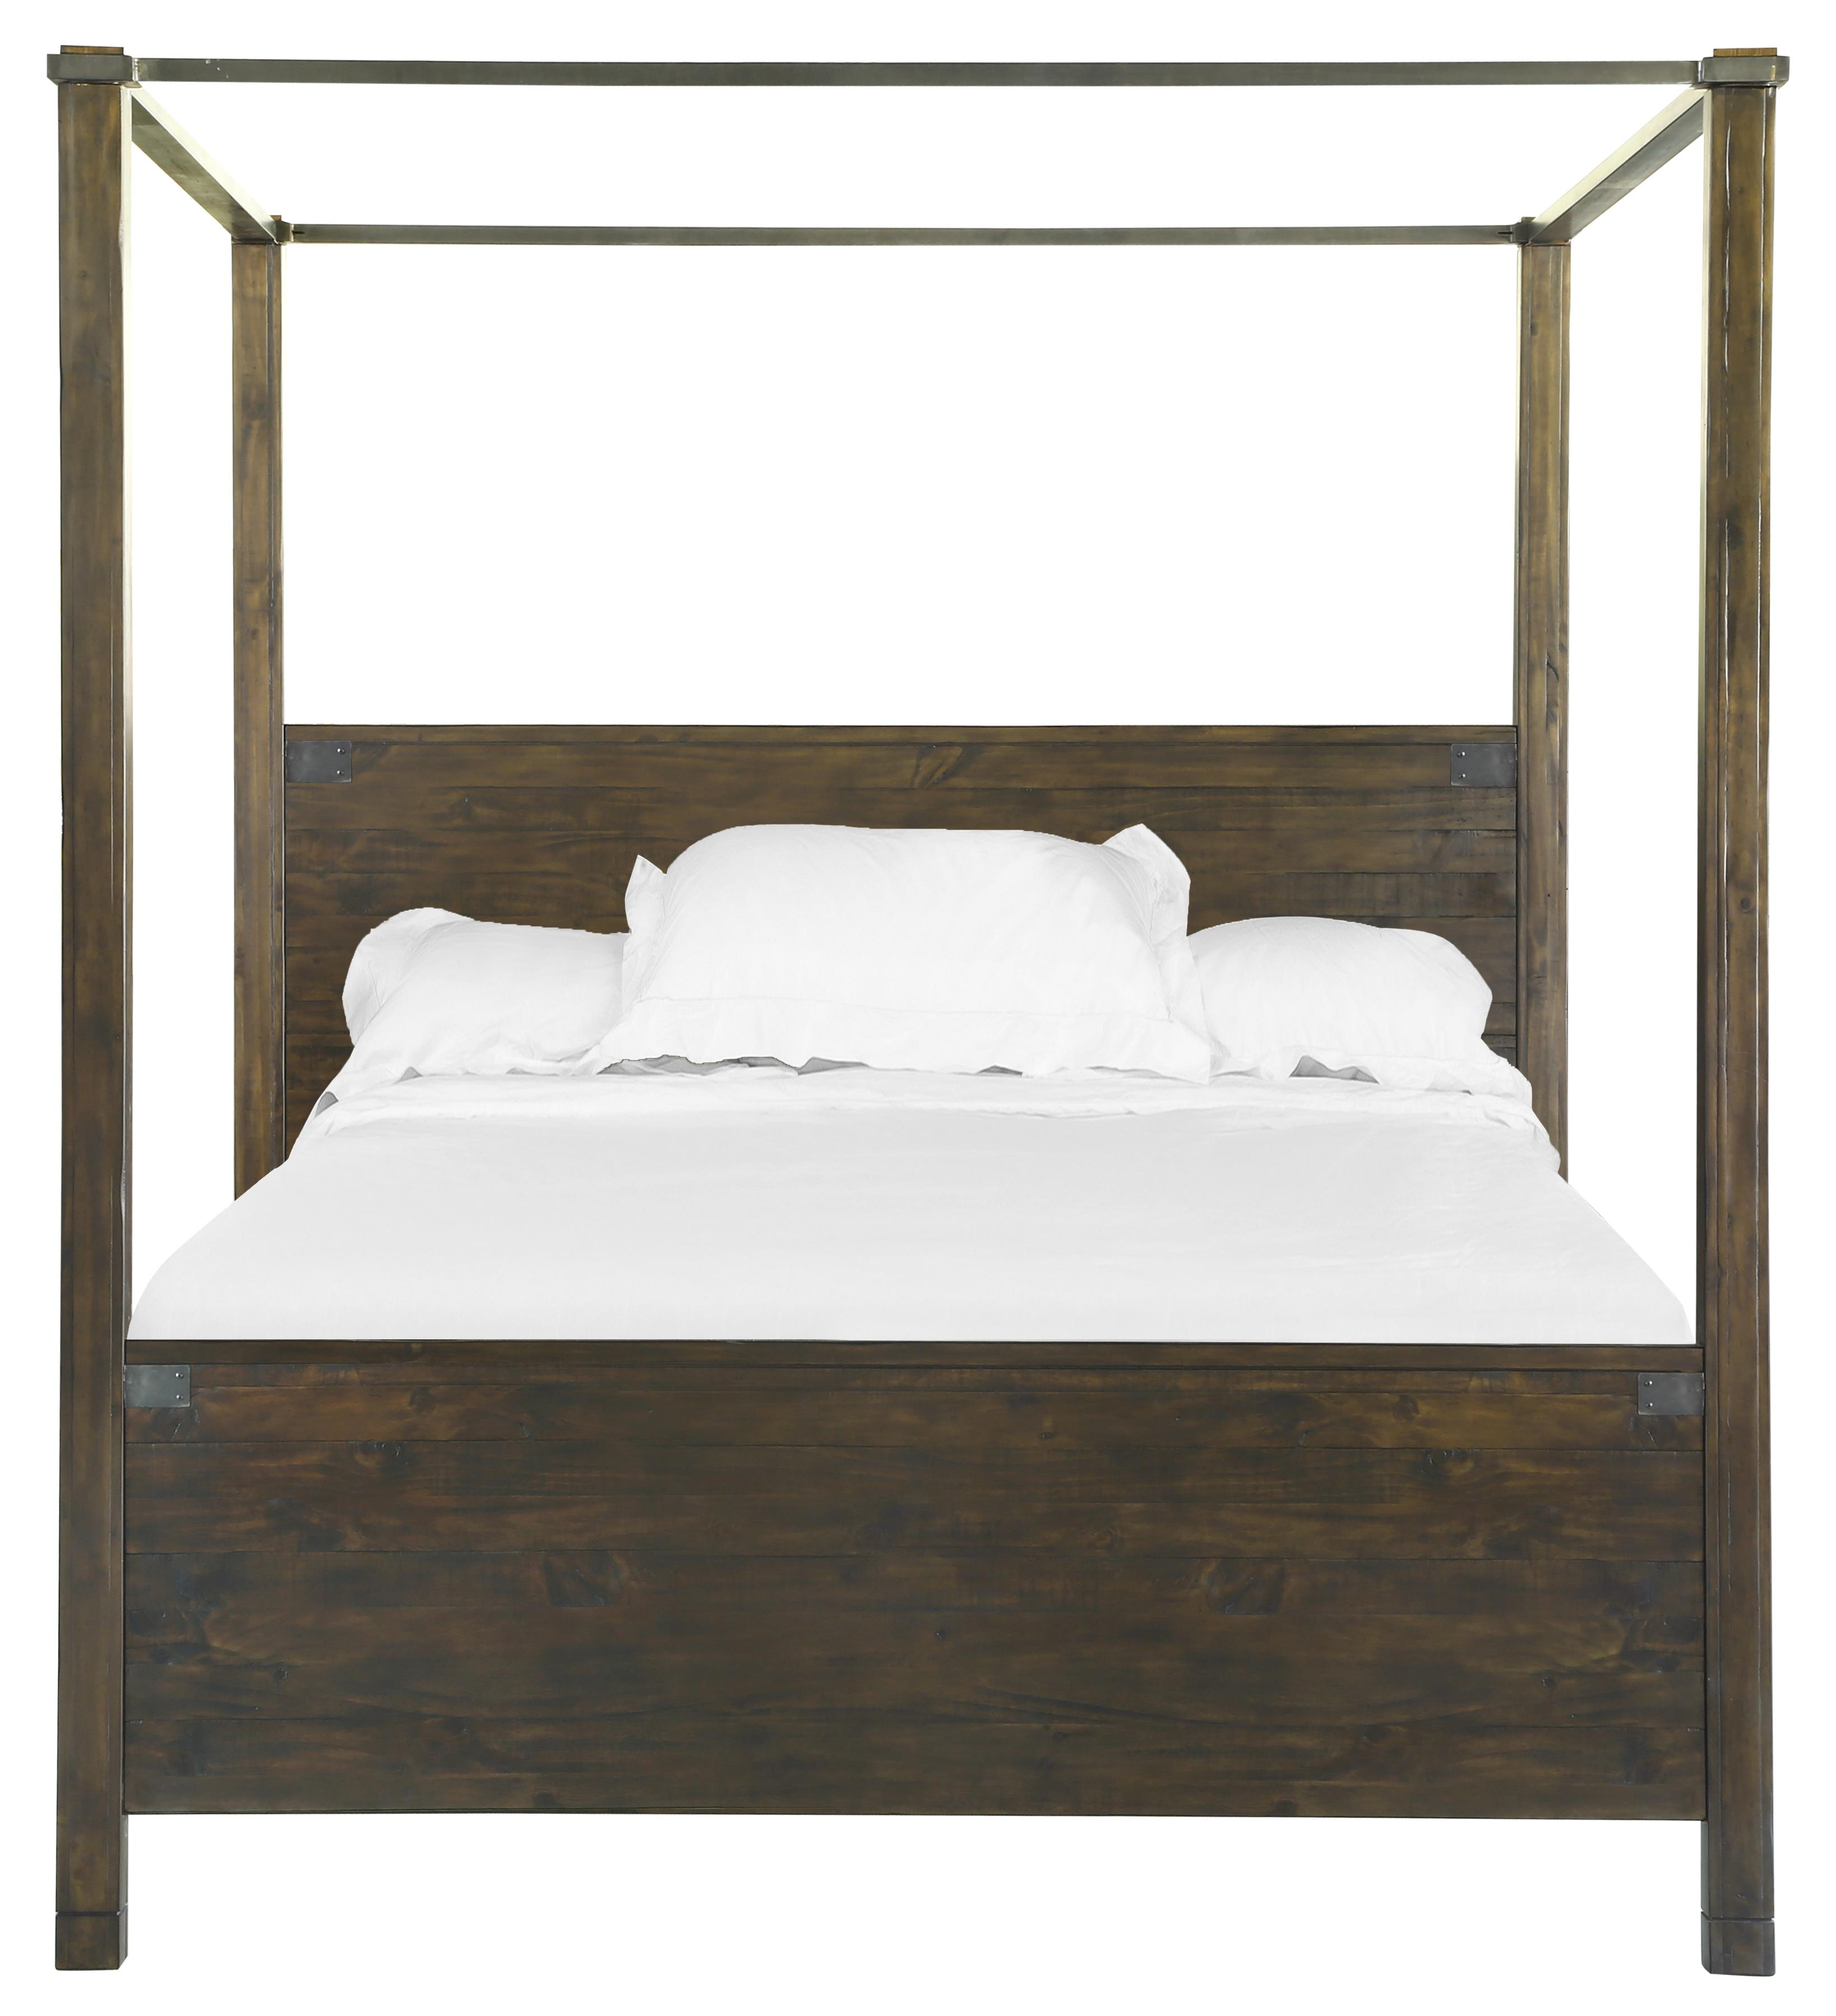 Queen Poster Bed in Rustic Pine Finish